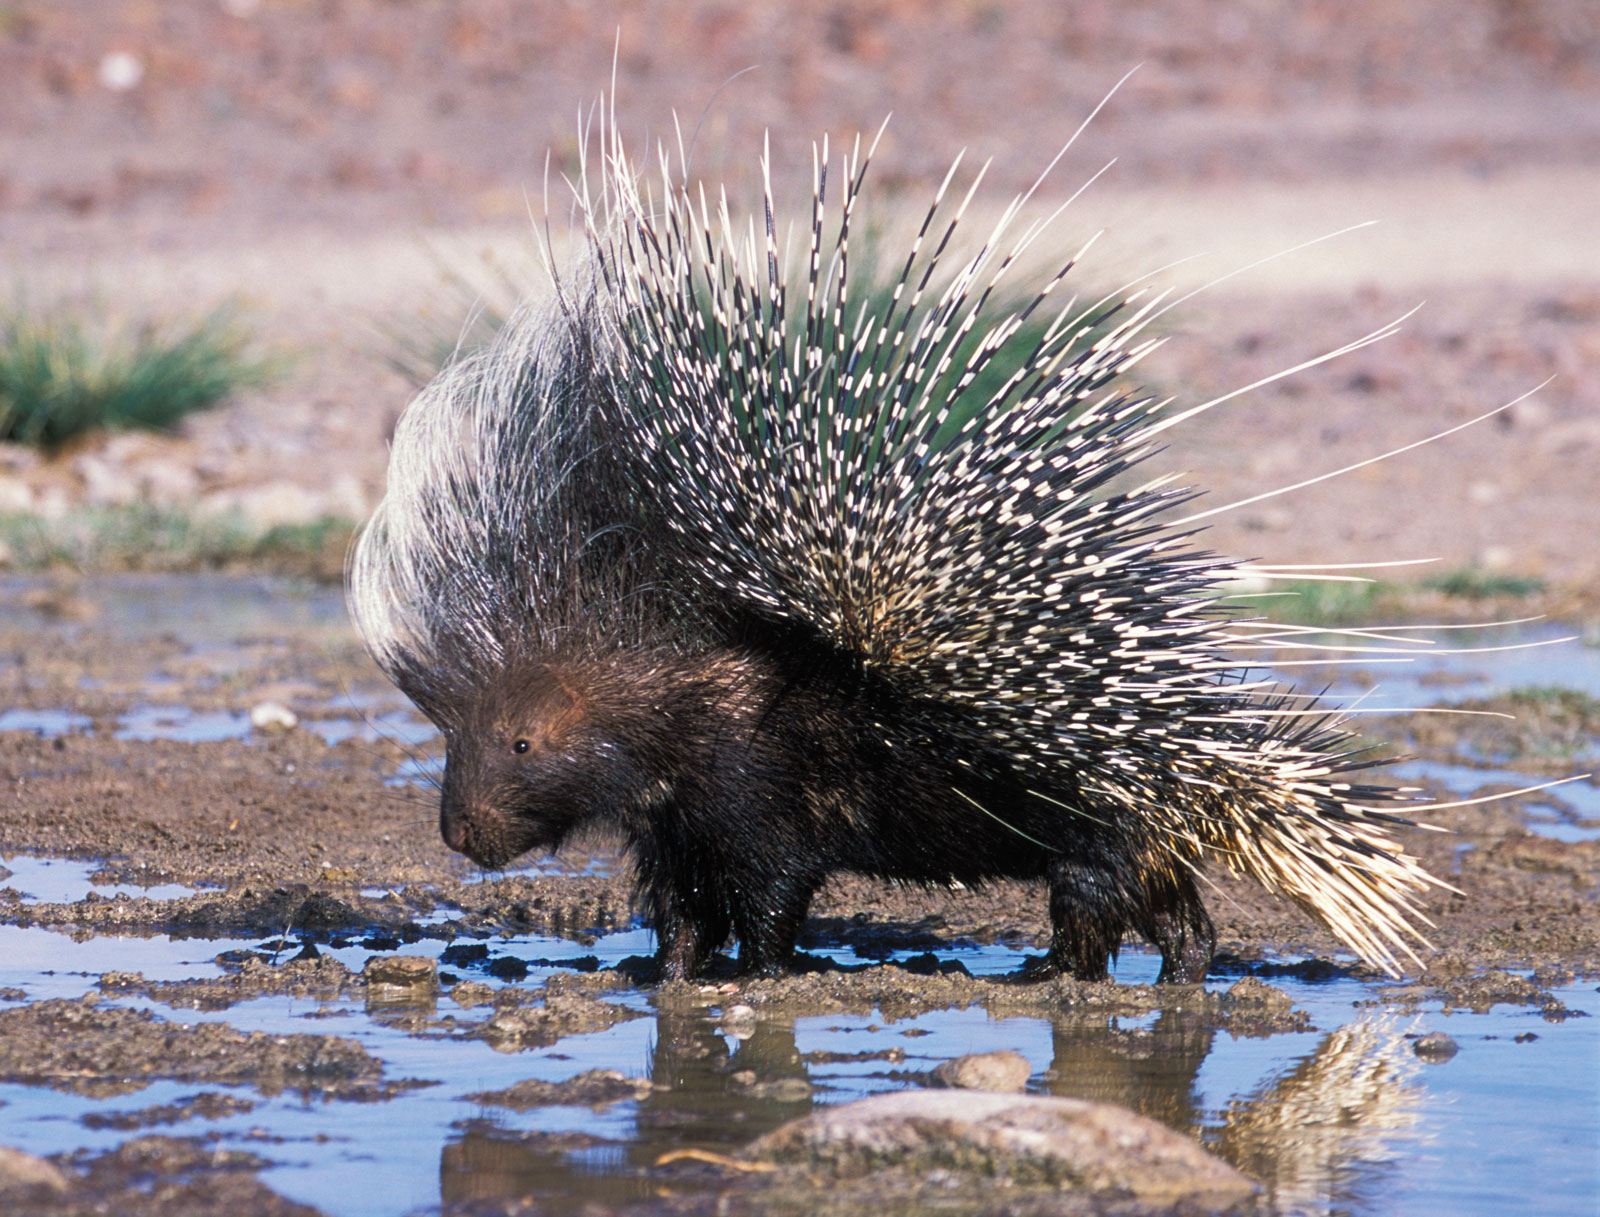 Porcupine | The Life of Animals